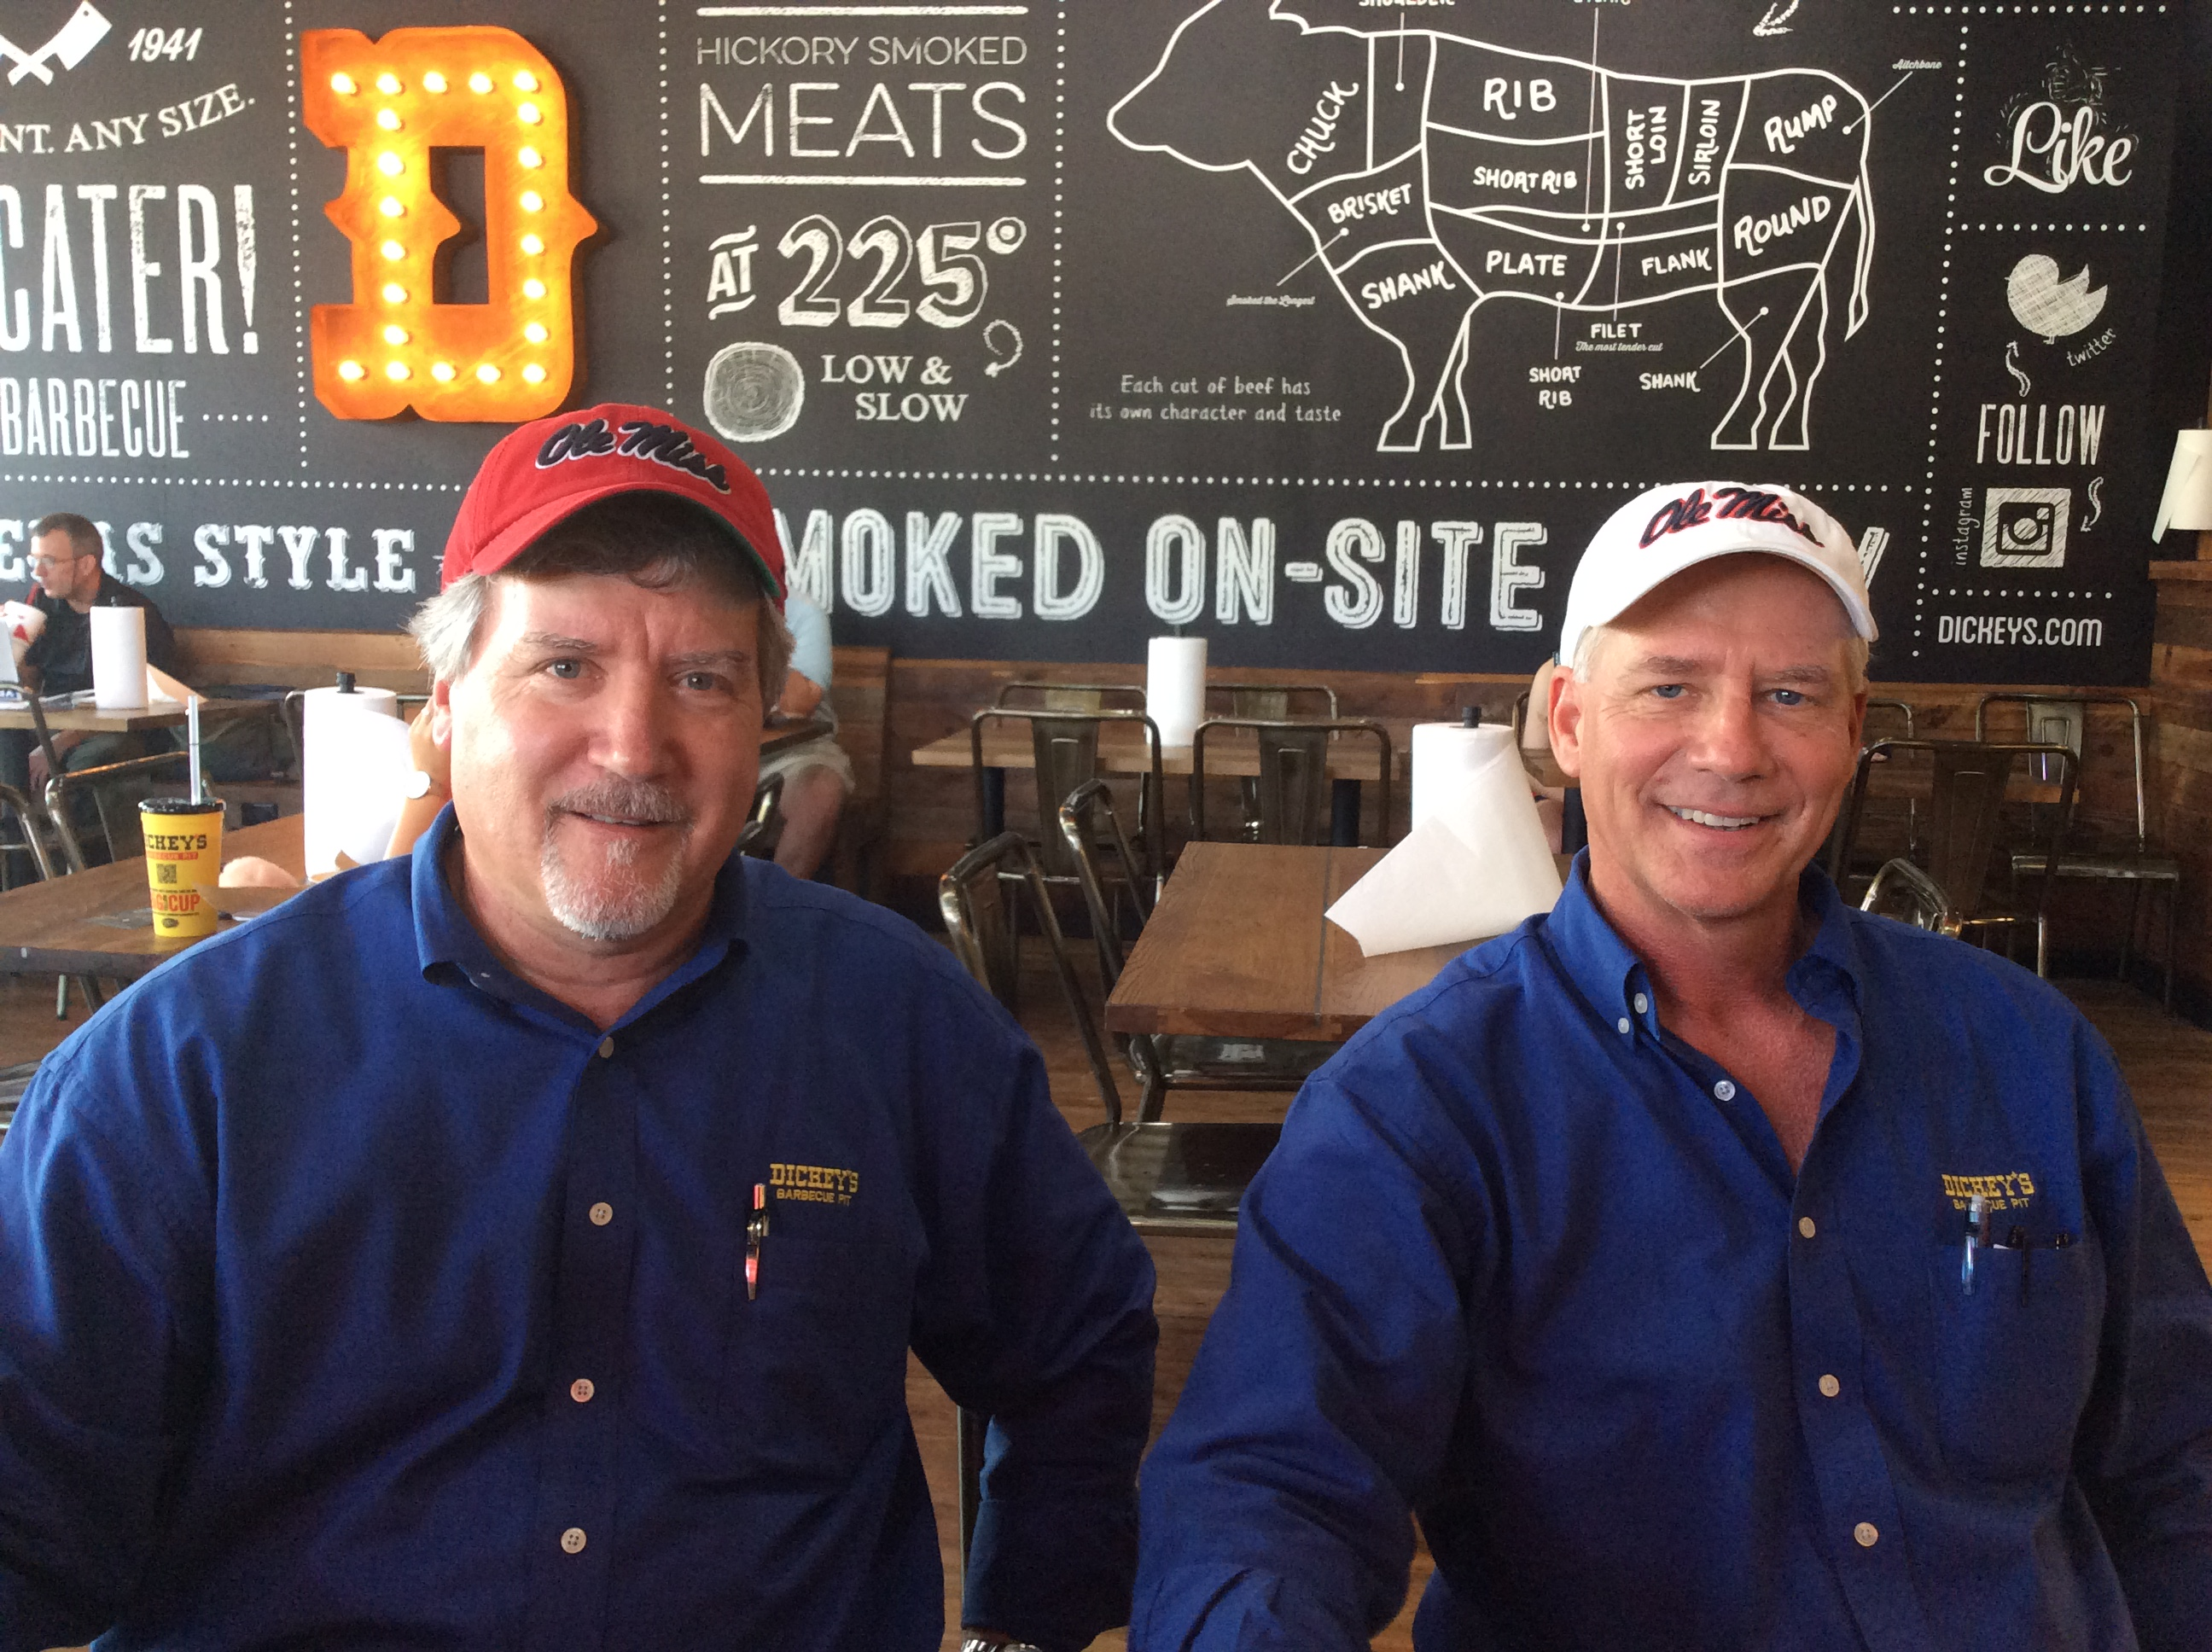 Eating Oxford: Dickey's Barbecue Pit Opens in Oxford